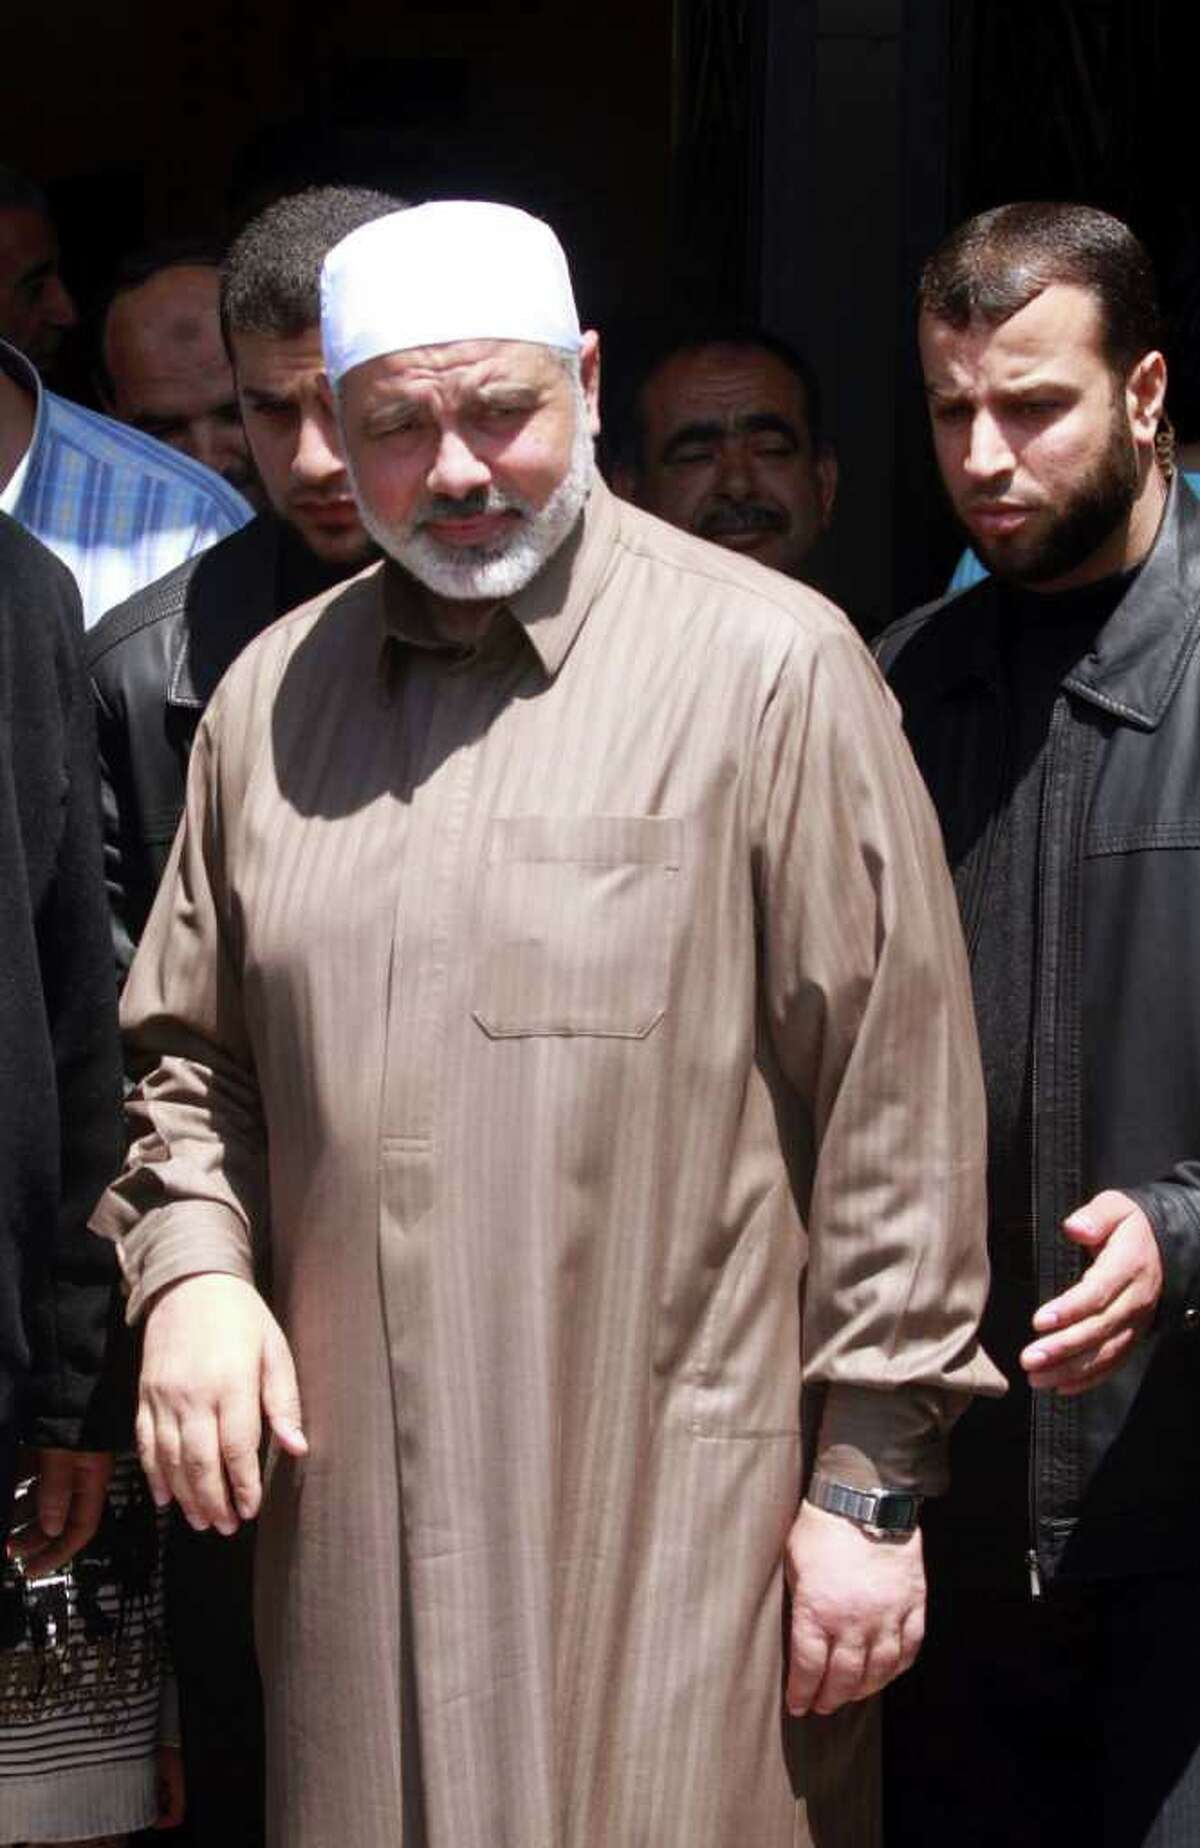 Gaza's Hamas Prime Minister Ismail Haniyeh leaves a mosque after Friday prayers in Gaza City, Friday, April 29, 2011. Officials from the rival Fatah and Hamas movements said Wednesday, they have reached an initial agreement on ending a four-year-old rift that has left them divided between rival governments in the West Bank and Gaza Strip.(AP Photo/Hatem Moussa)